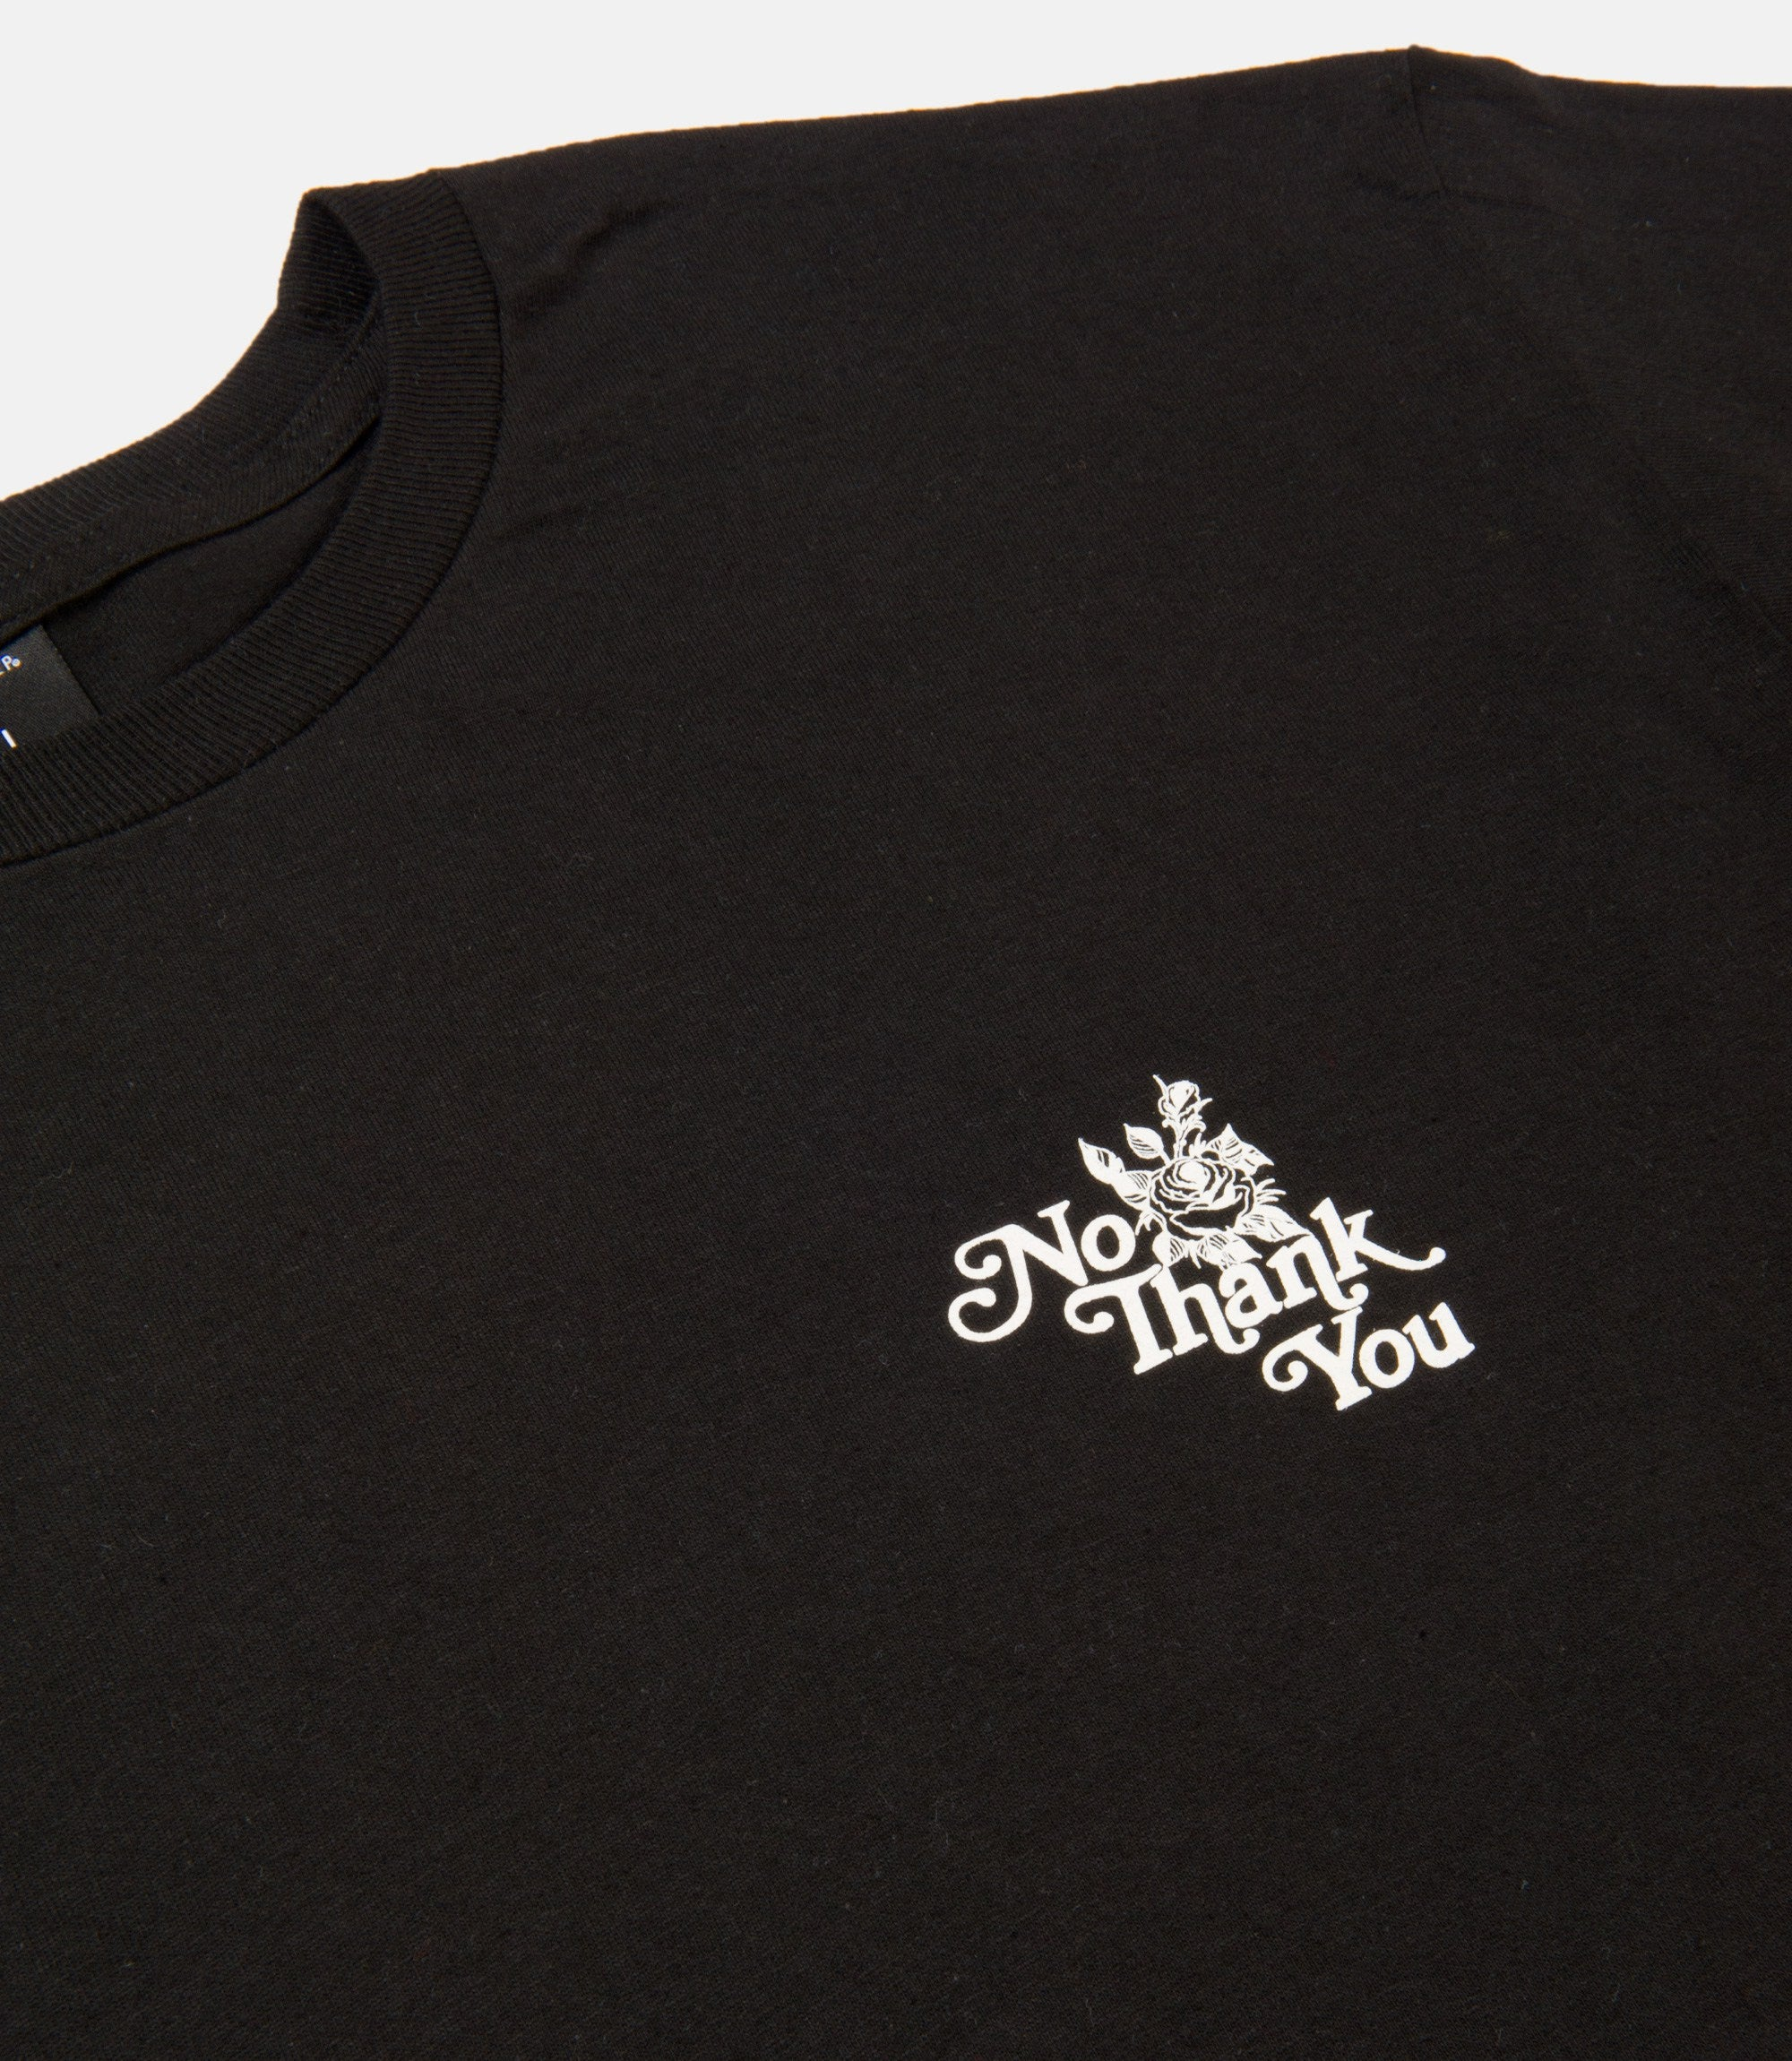 10Deep - Many Returns Men's Tee, Black - The Giant Peach